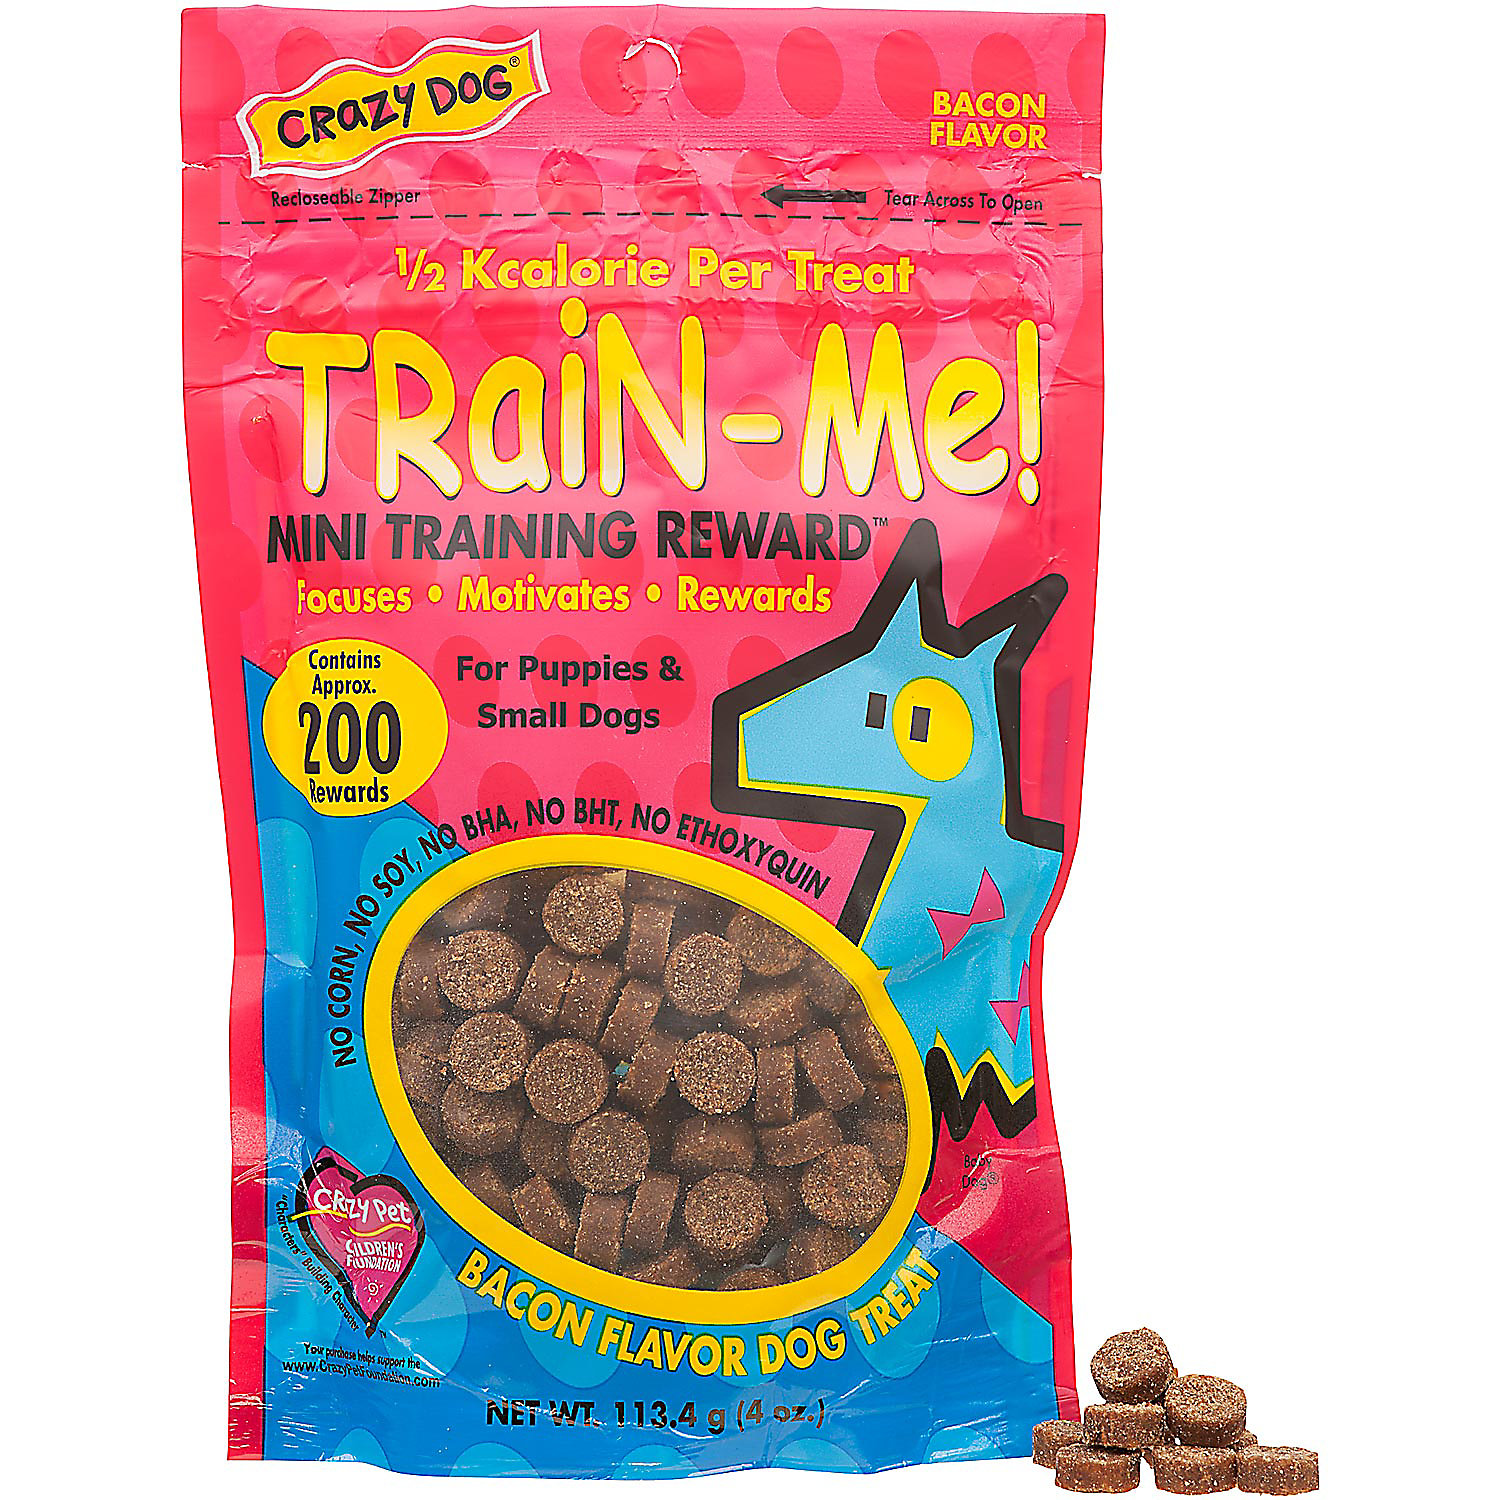 Crazy Dog Train Me Mini Training Reward Dog Treats